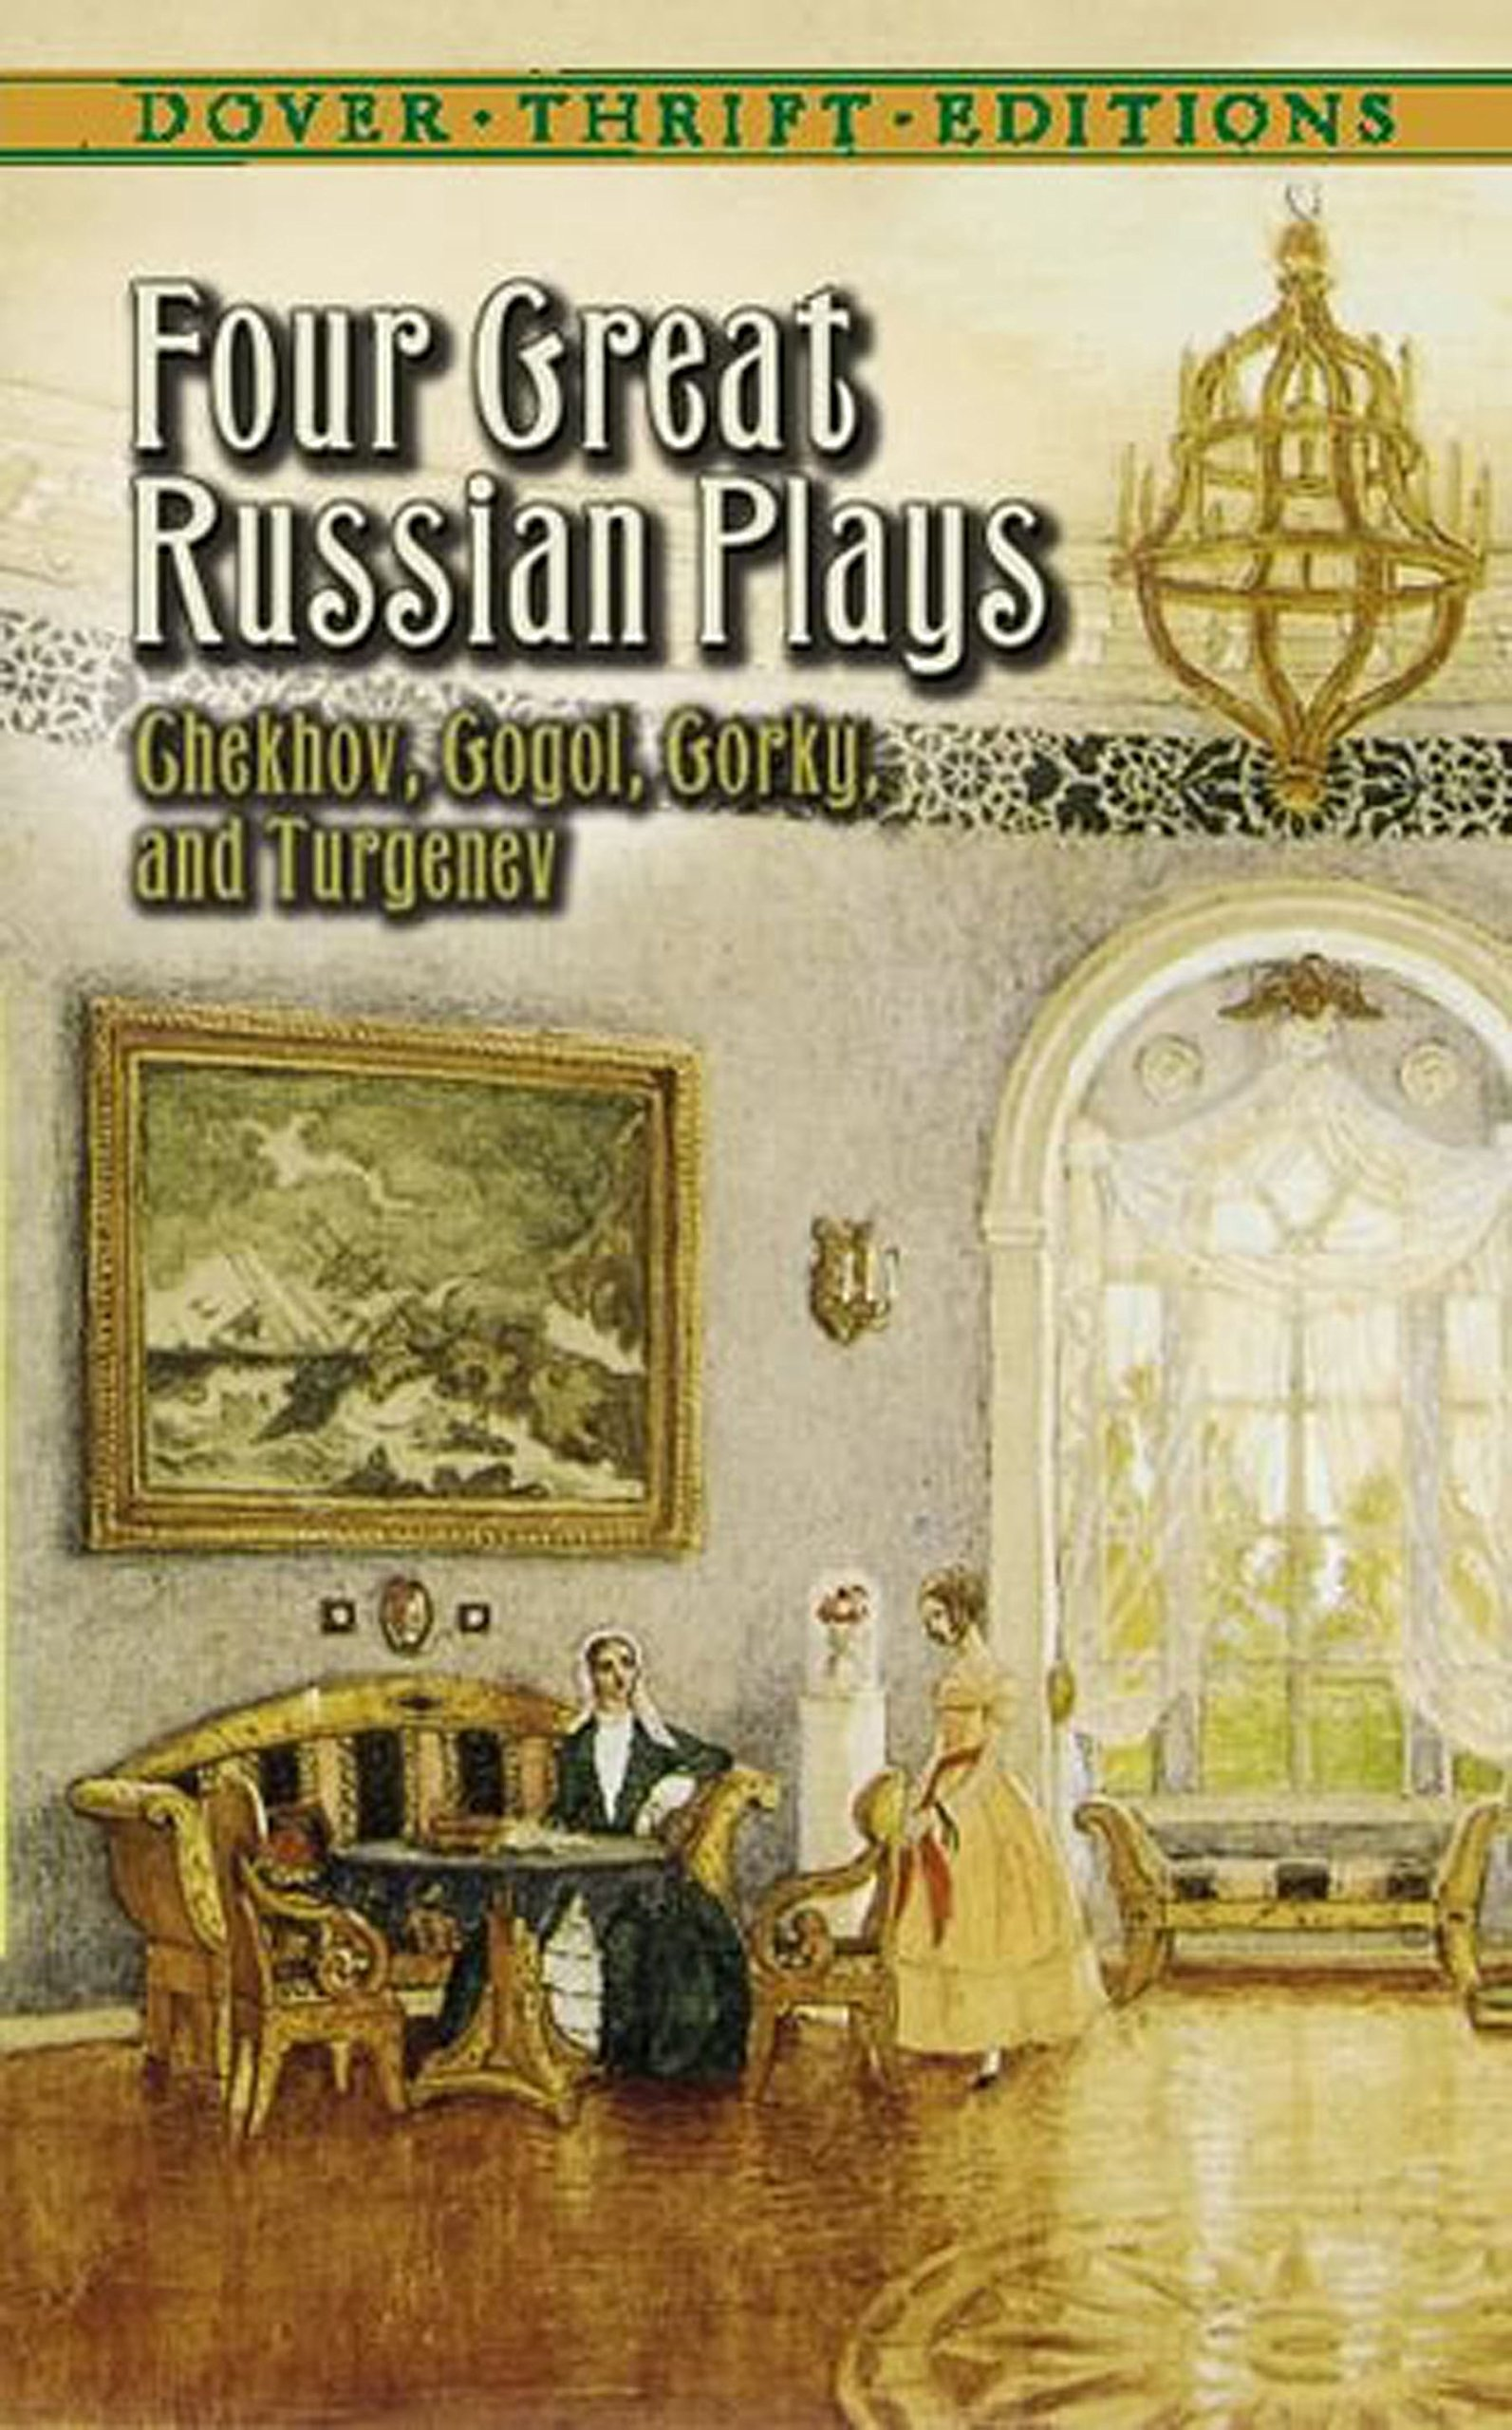 Four Great Russian Plays  Dover Thrift Editions   English Edition